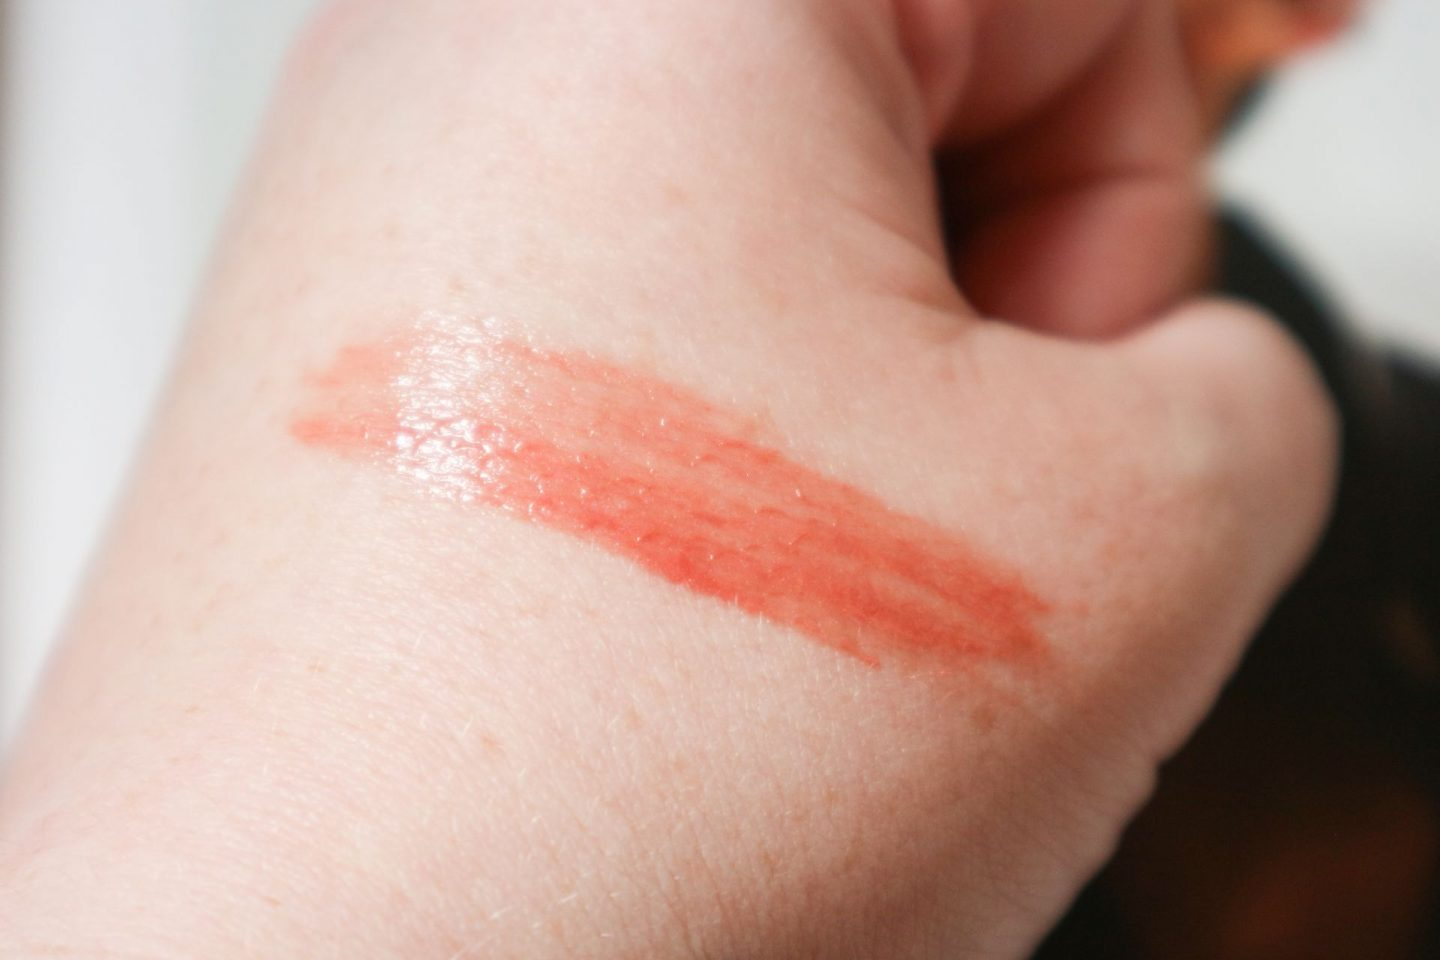 Charlotte Tilbury Collagen Lip Bath in Rosy Glow swatch